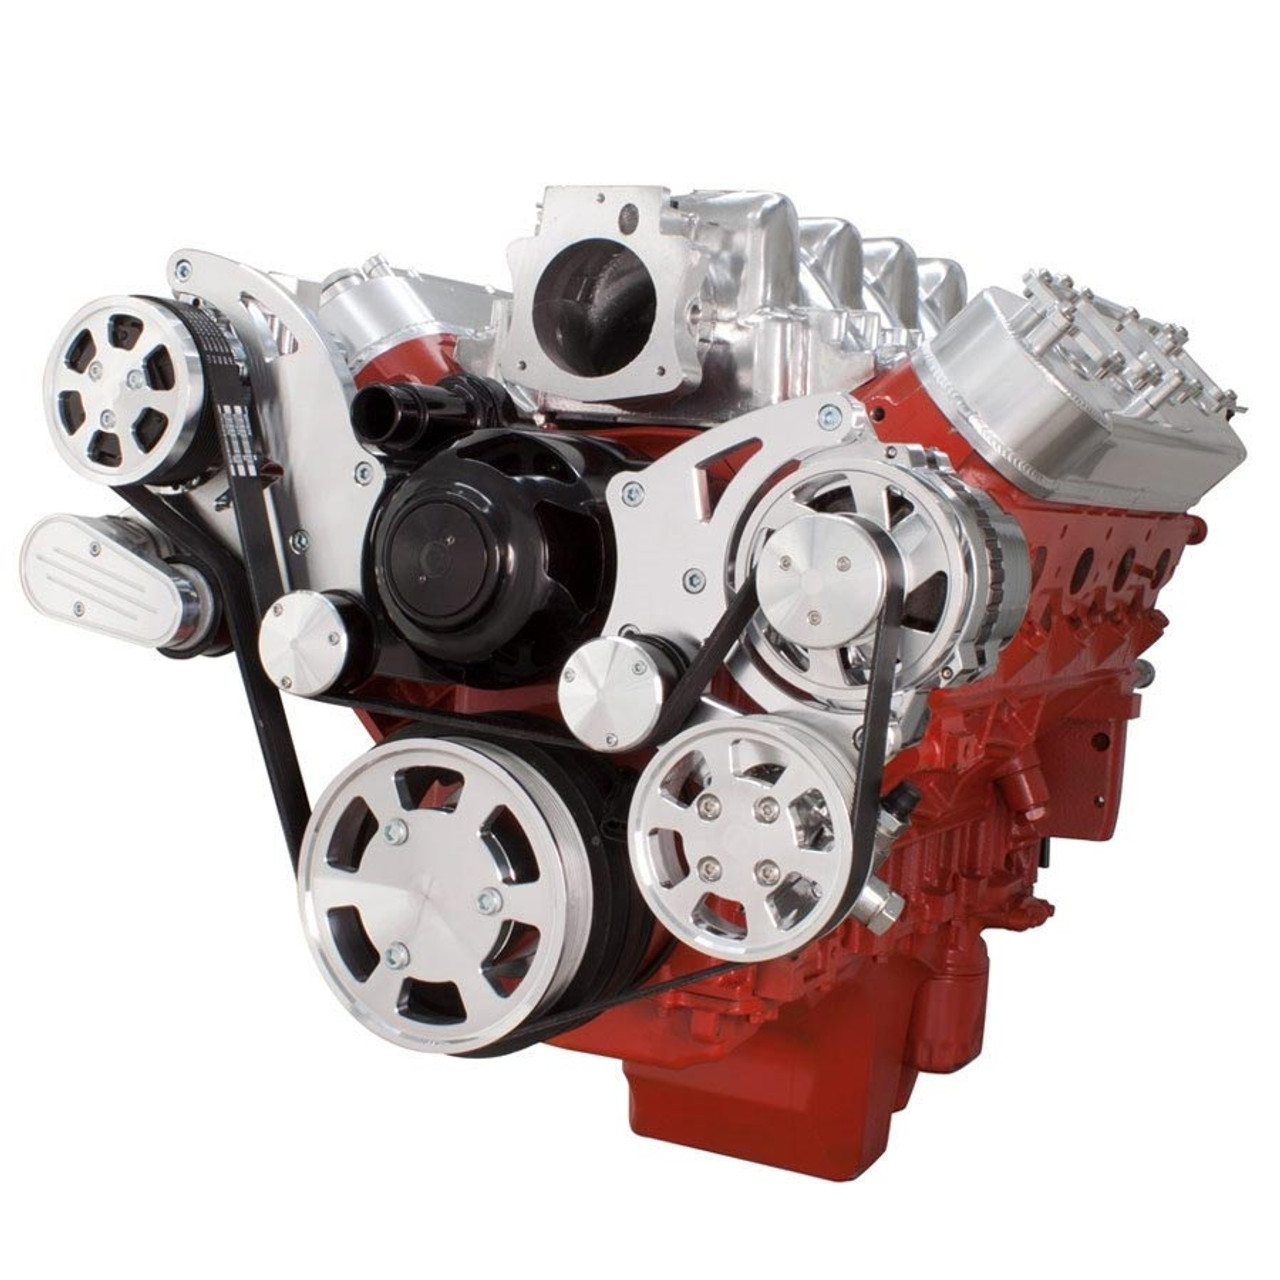 hight resolution of chevy ls engine serpentine kit ac alternator power steering with electric water